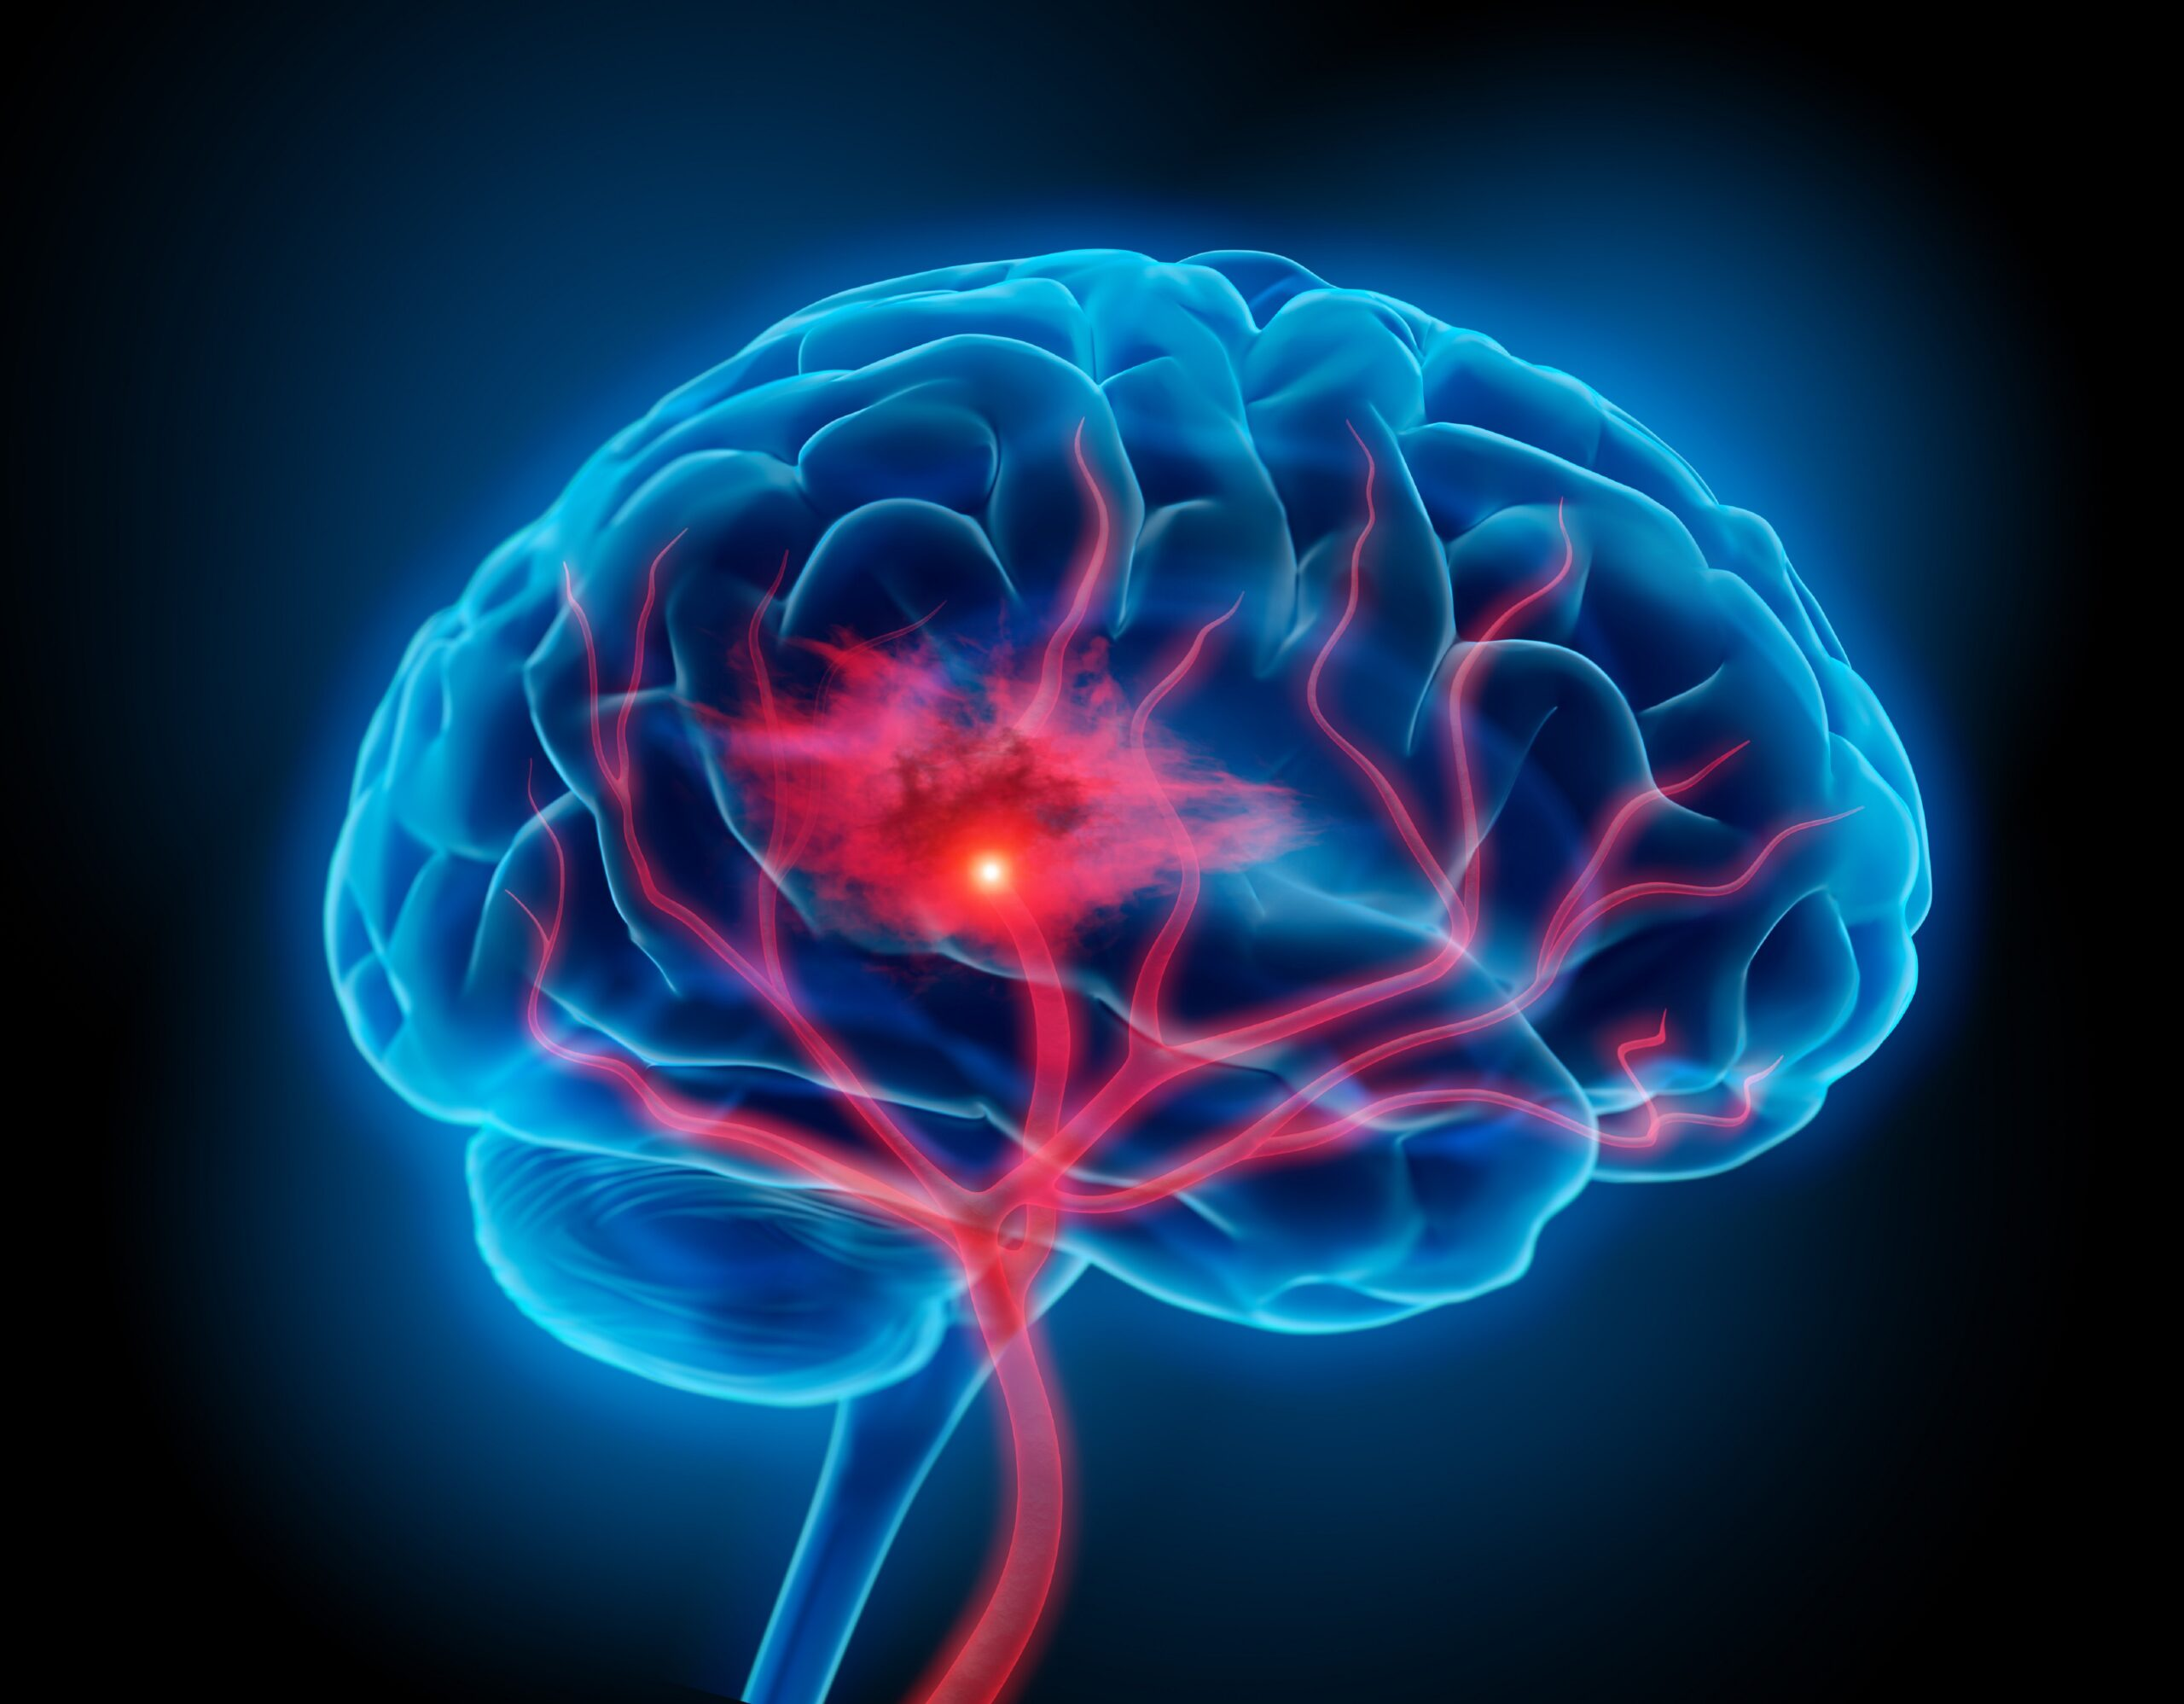 Blood-thinning drugs increase the risk of cerebral hemorrhage - medical practice